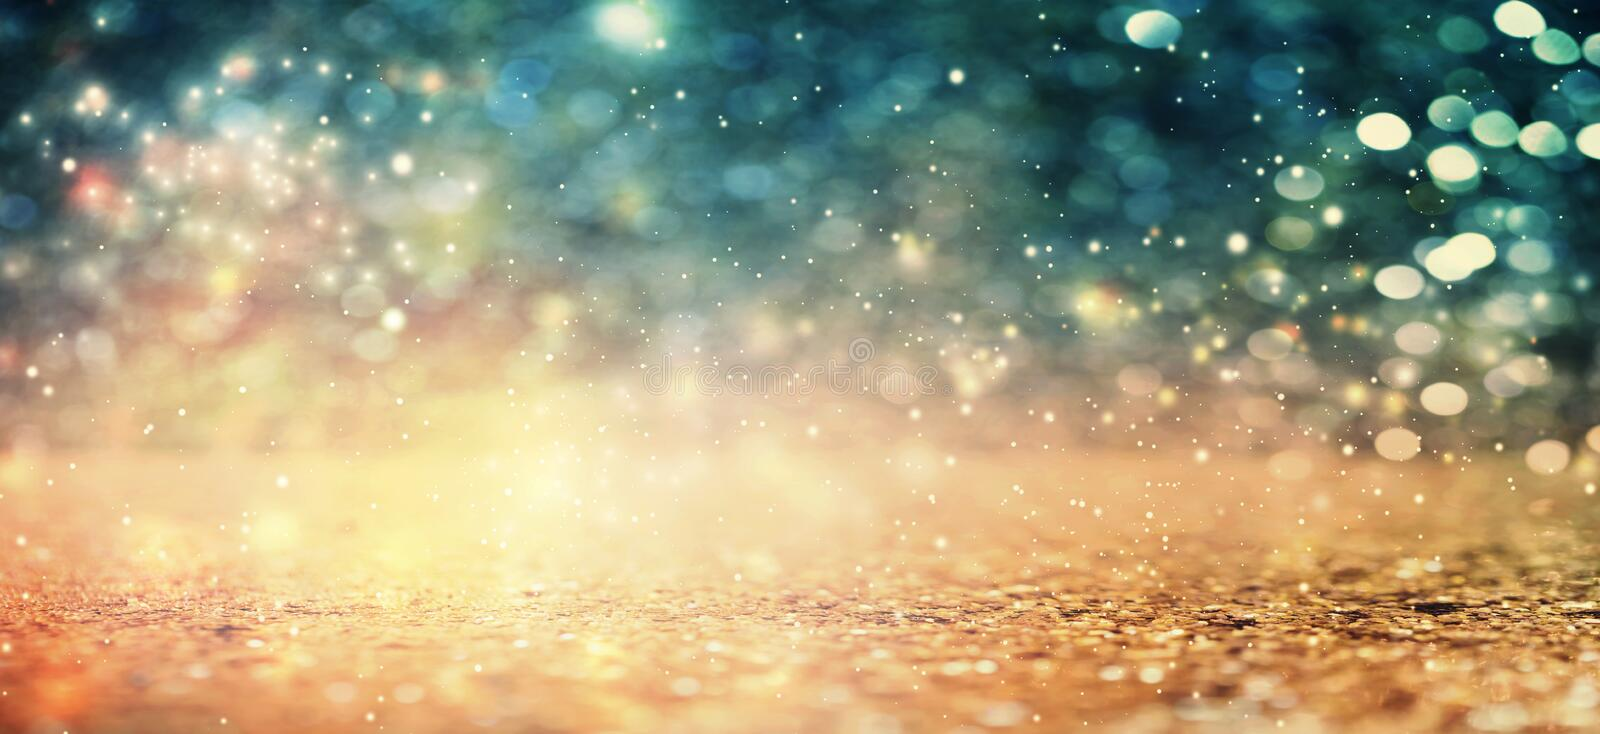 Colorful abstract shiny light background royalty free stock photo